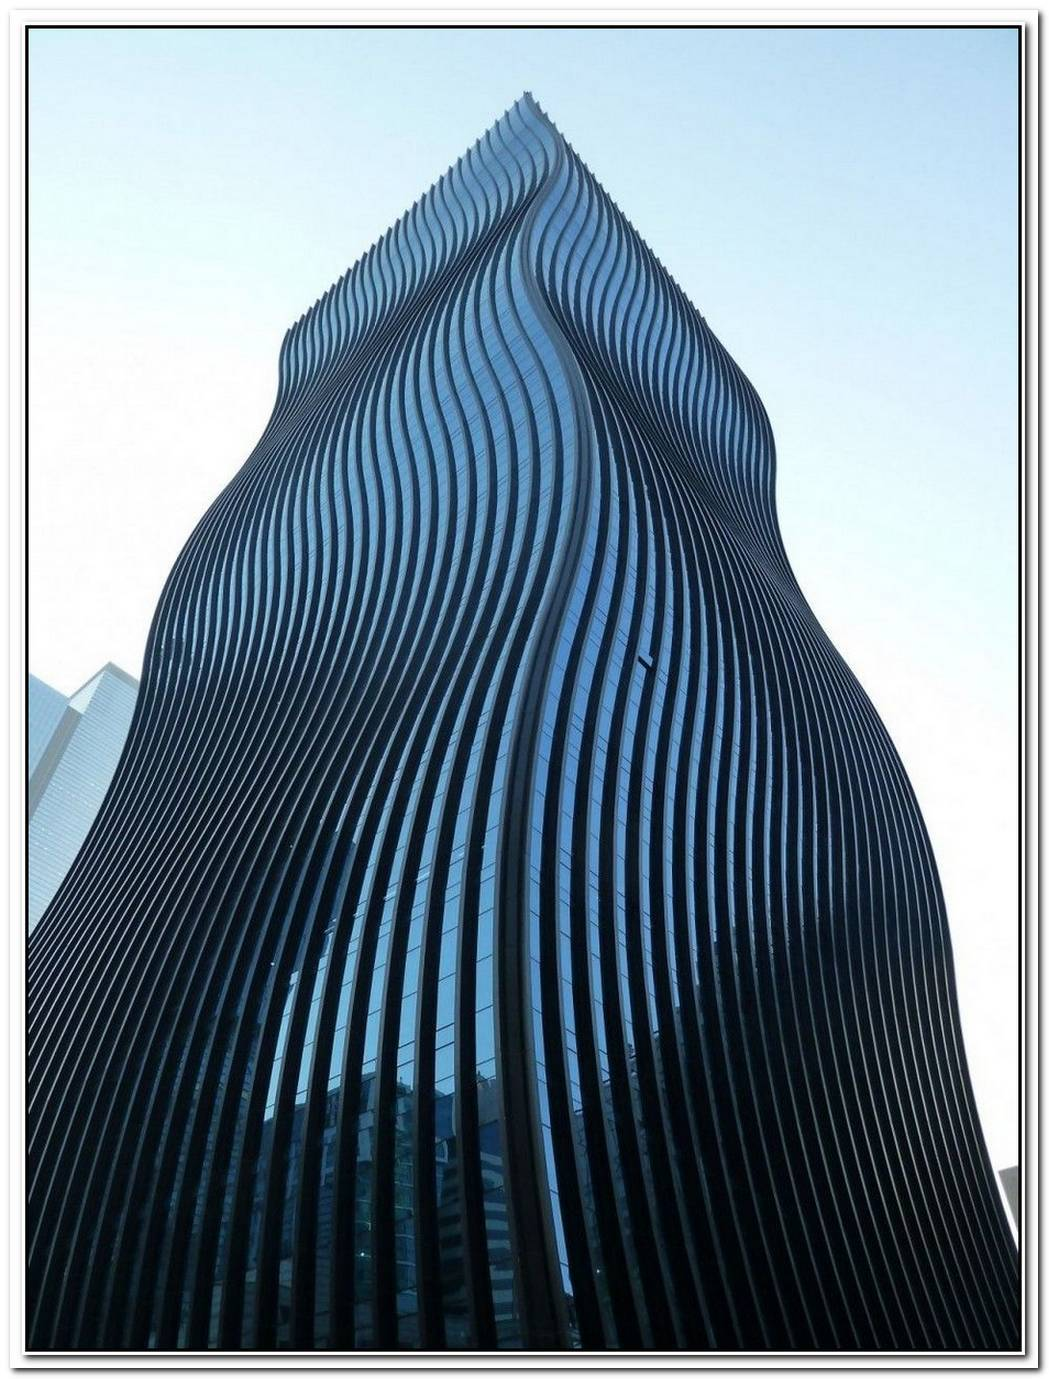 Impressive Office Tower With Undulating Glass Façade In Seoul